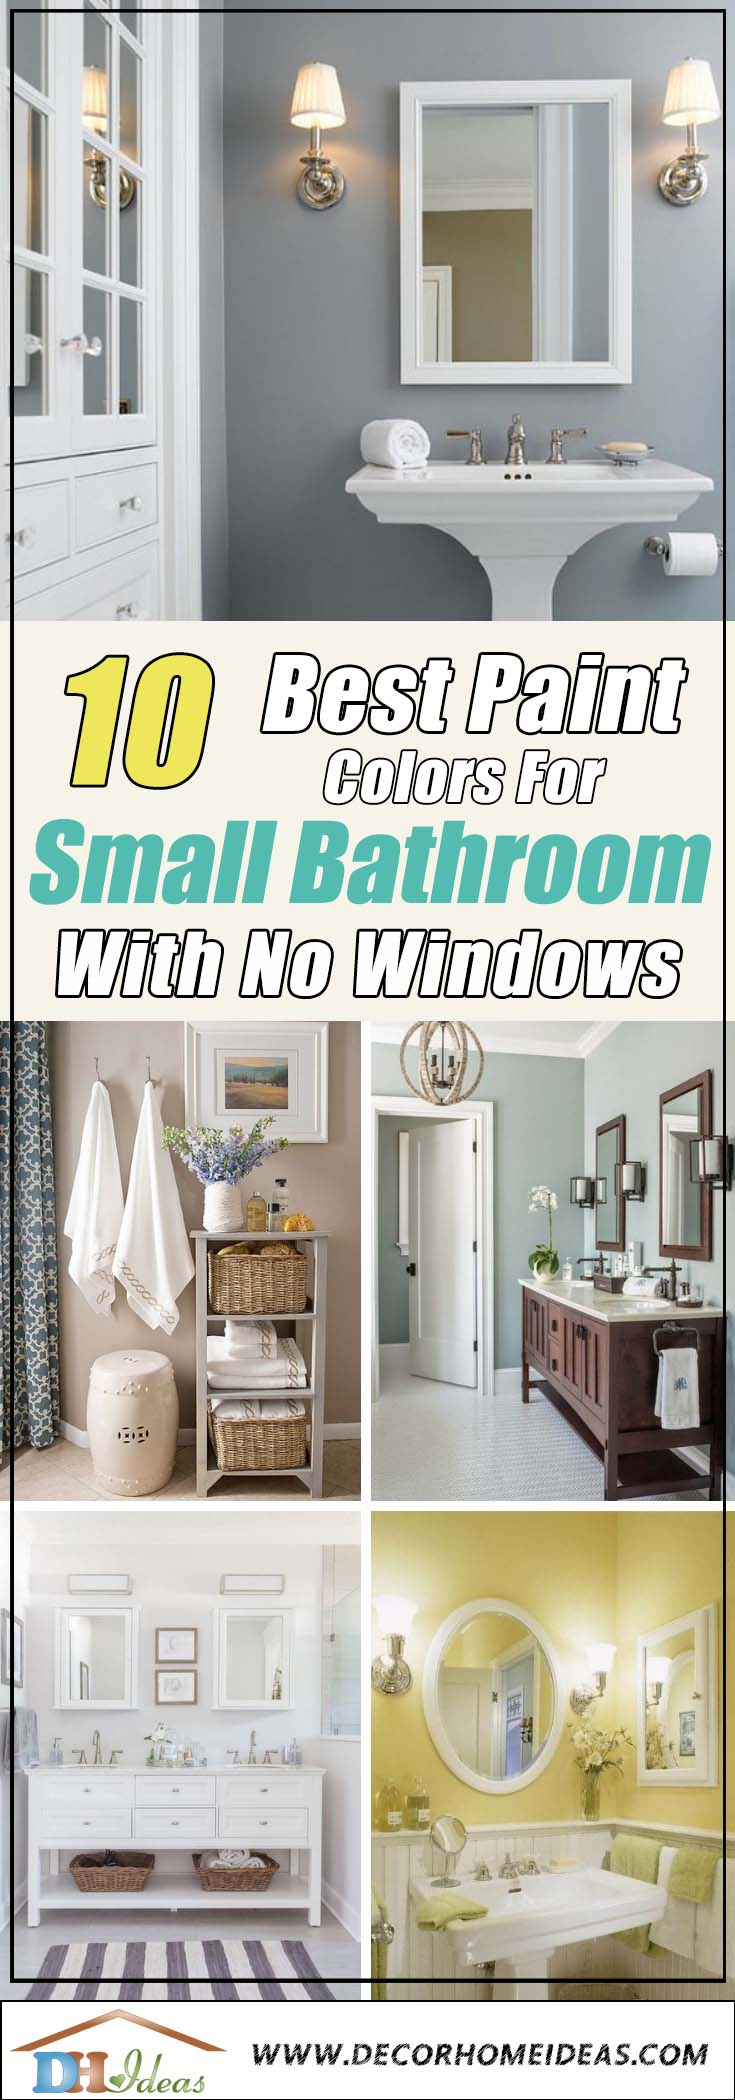 10 Best Paint Colors for Small Windowless Bathroom | Colors, paints, trends and best ideas and decoration tips on bathroom and small bathrooms witn no windows. #bathroom #bathroomdesign #bathroomremodel #bathroomideas #color #decor #paint #furniture #trends #decorhomeideas